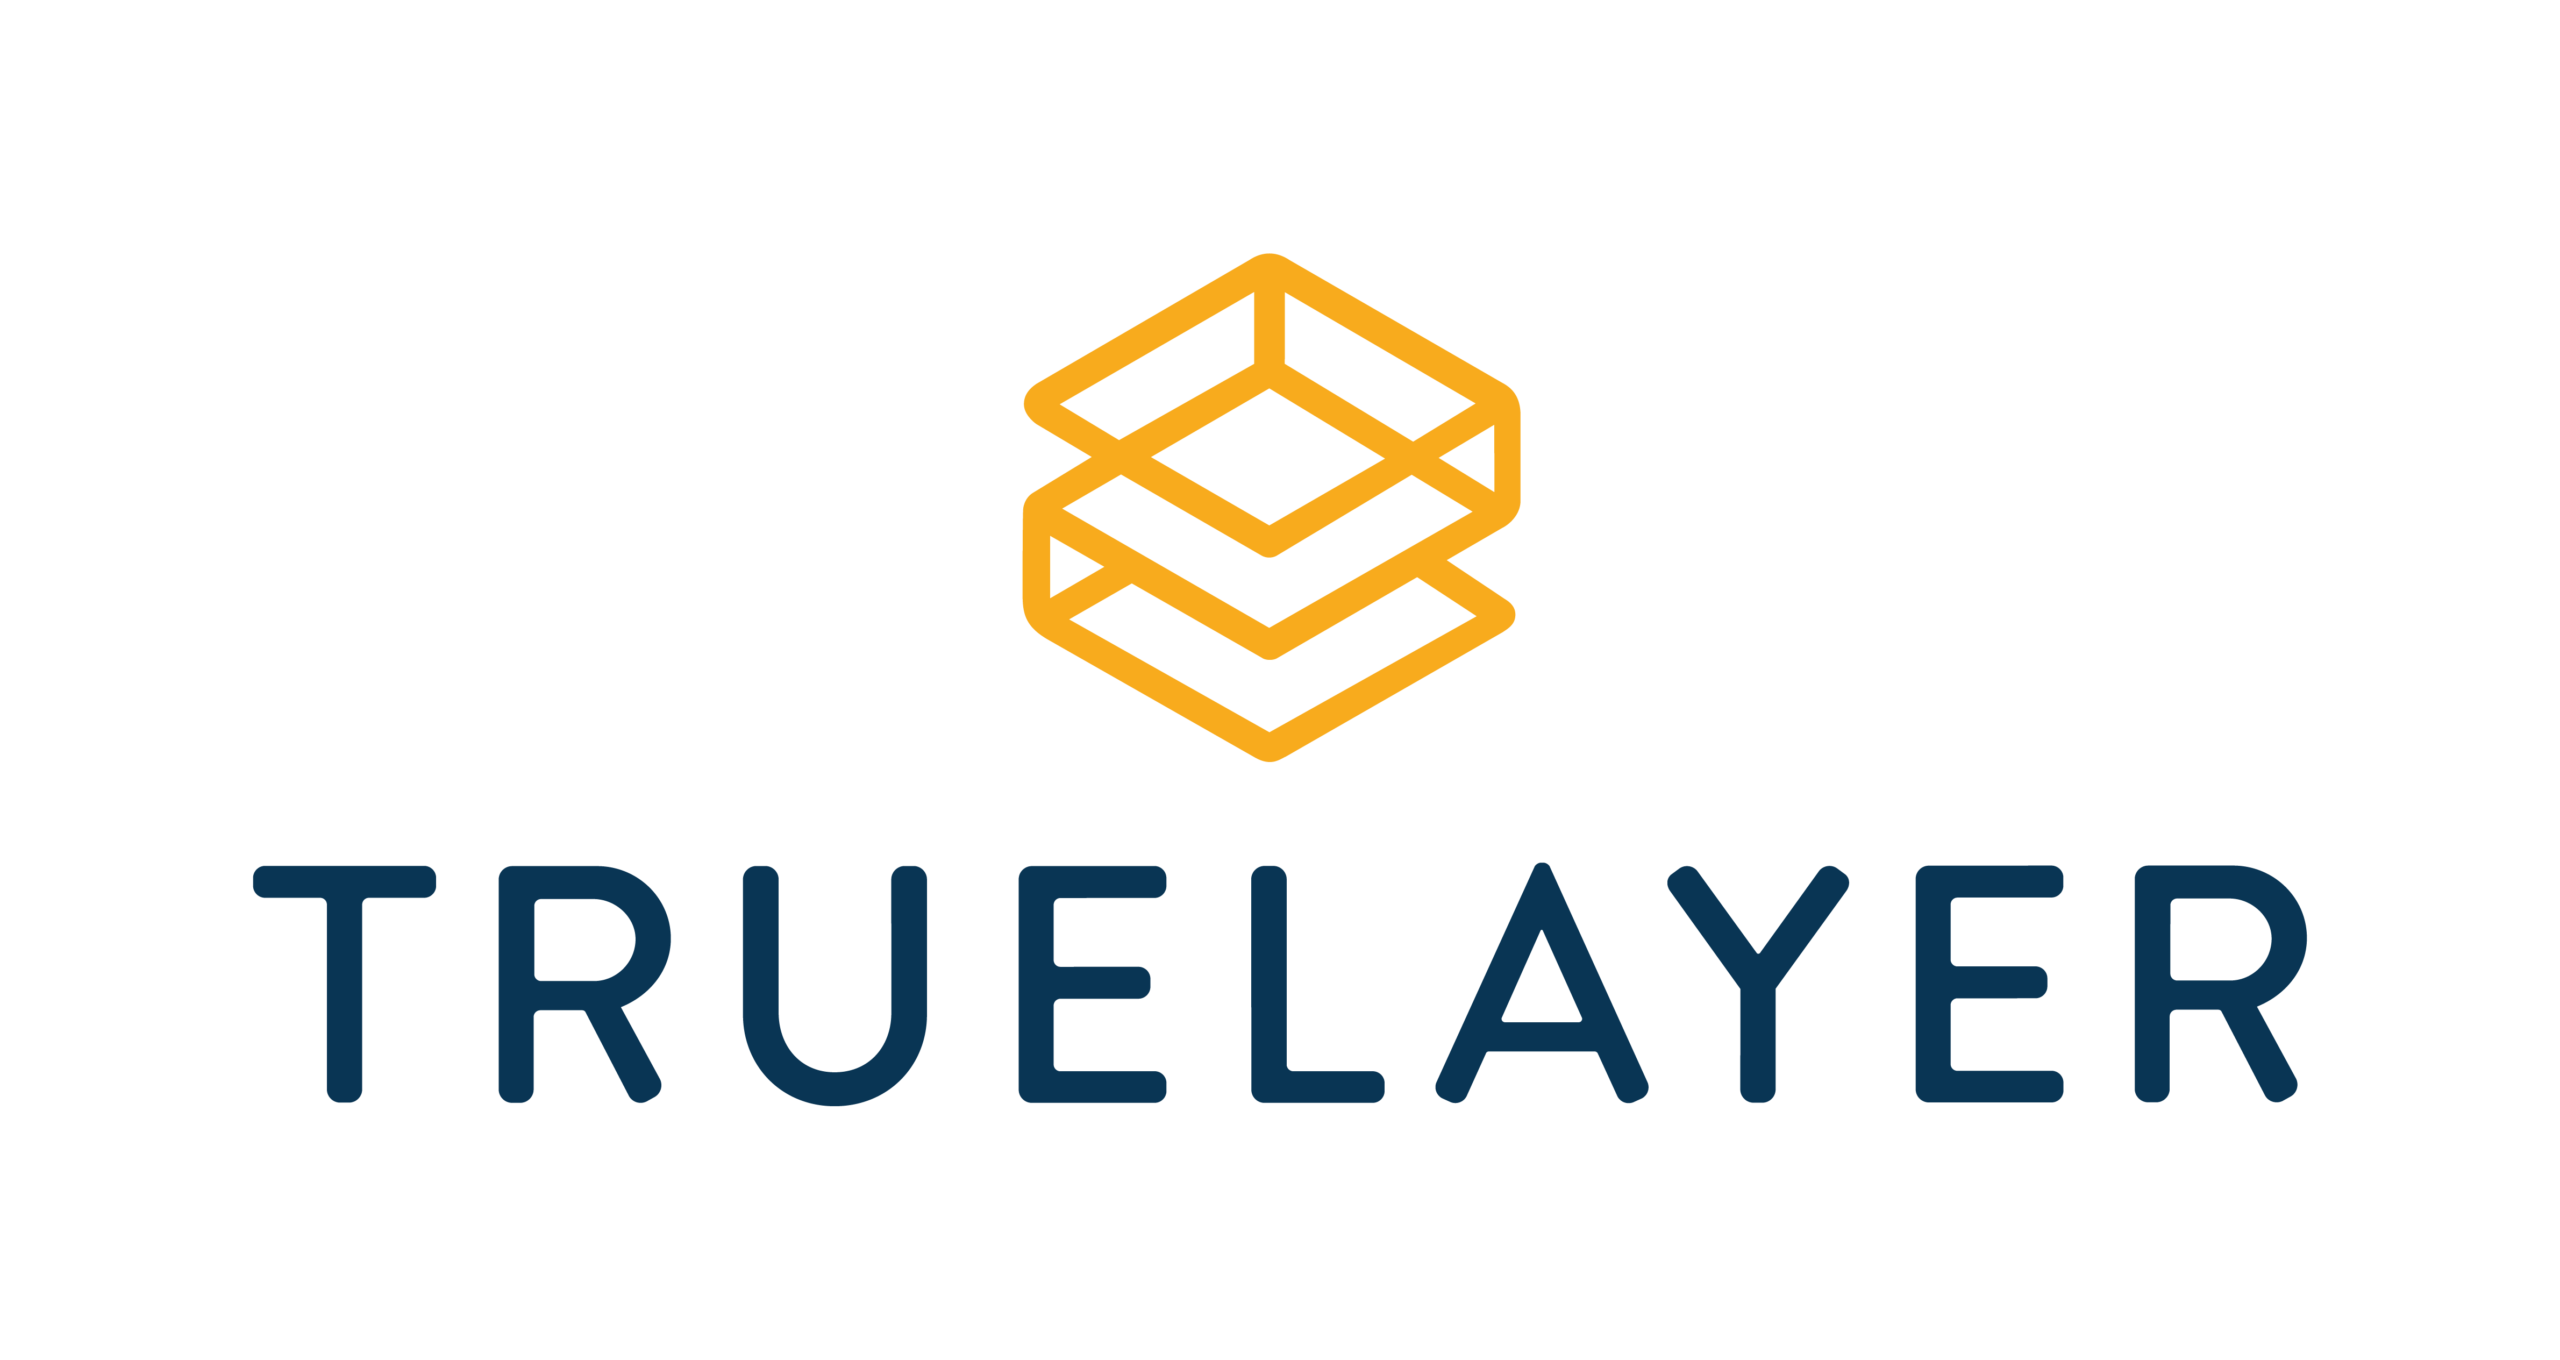 TrueLayer Raises $25M in Series C Round